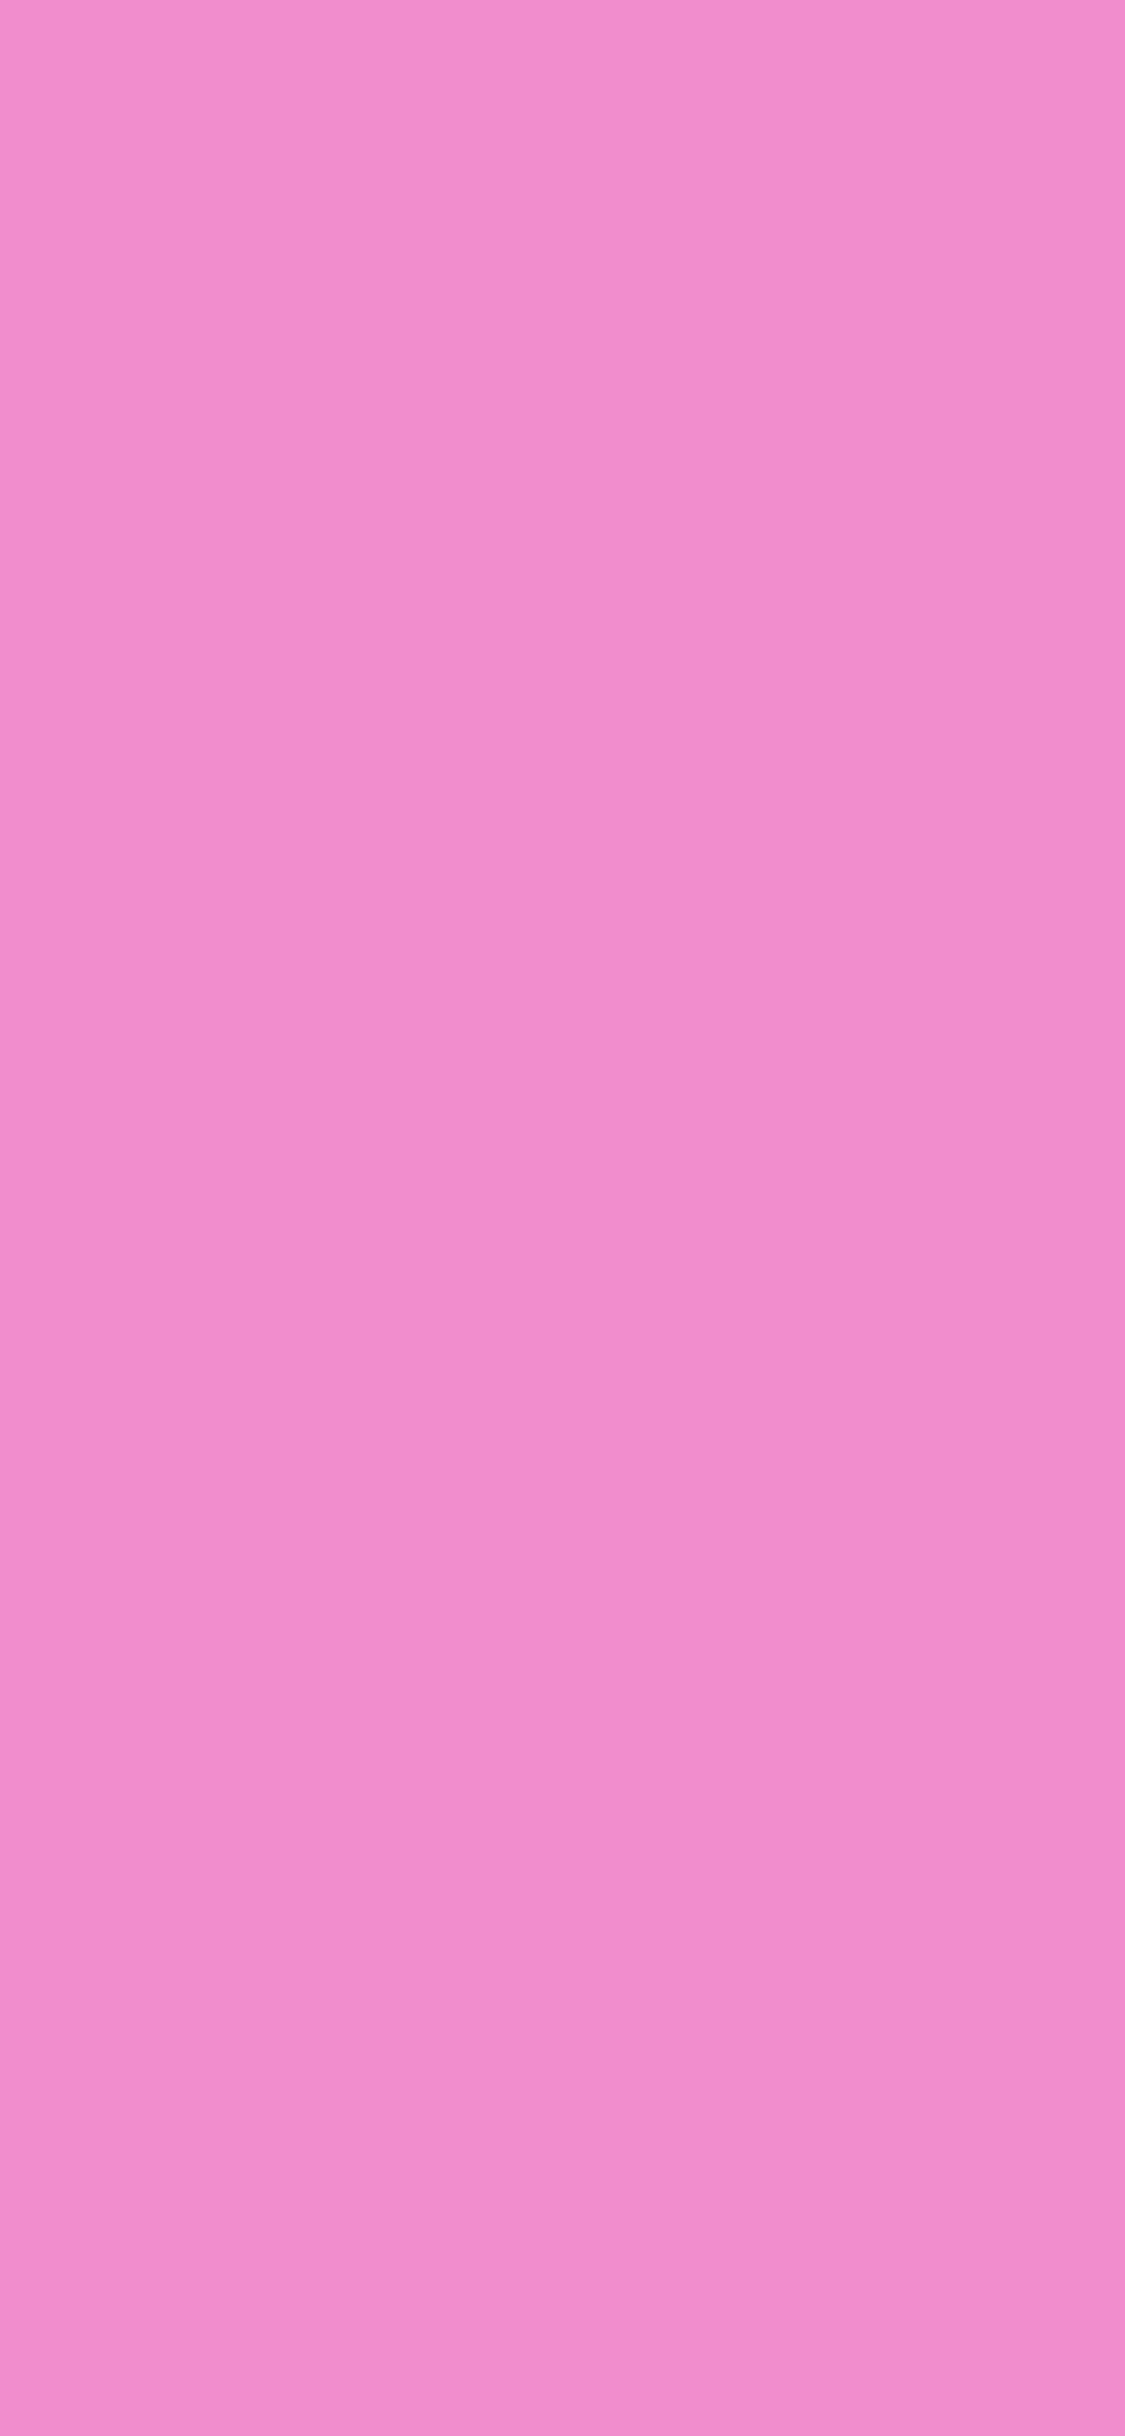 1125x2436 Orchid Pink Solid Color Background